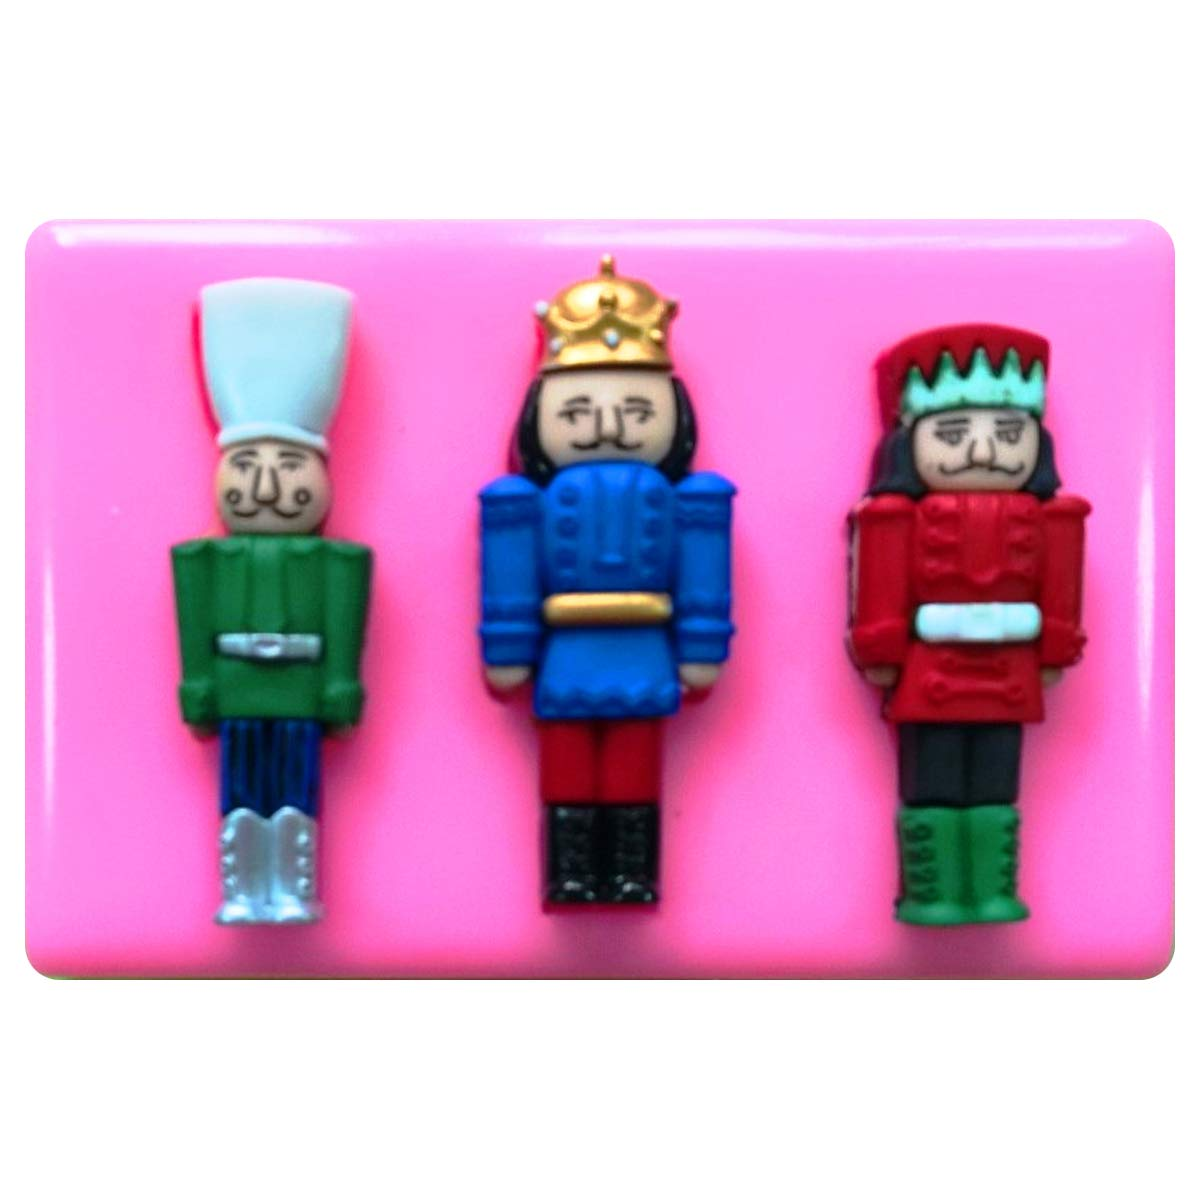 Christmas Vintage Nutcracker Silicone Mould Mold for Cake Decorating Cake Cupcake Toppers Icing Sugarcraft Tool by Fairie Blessings